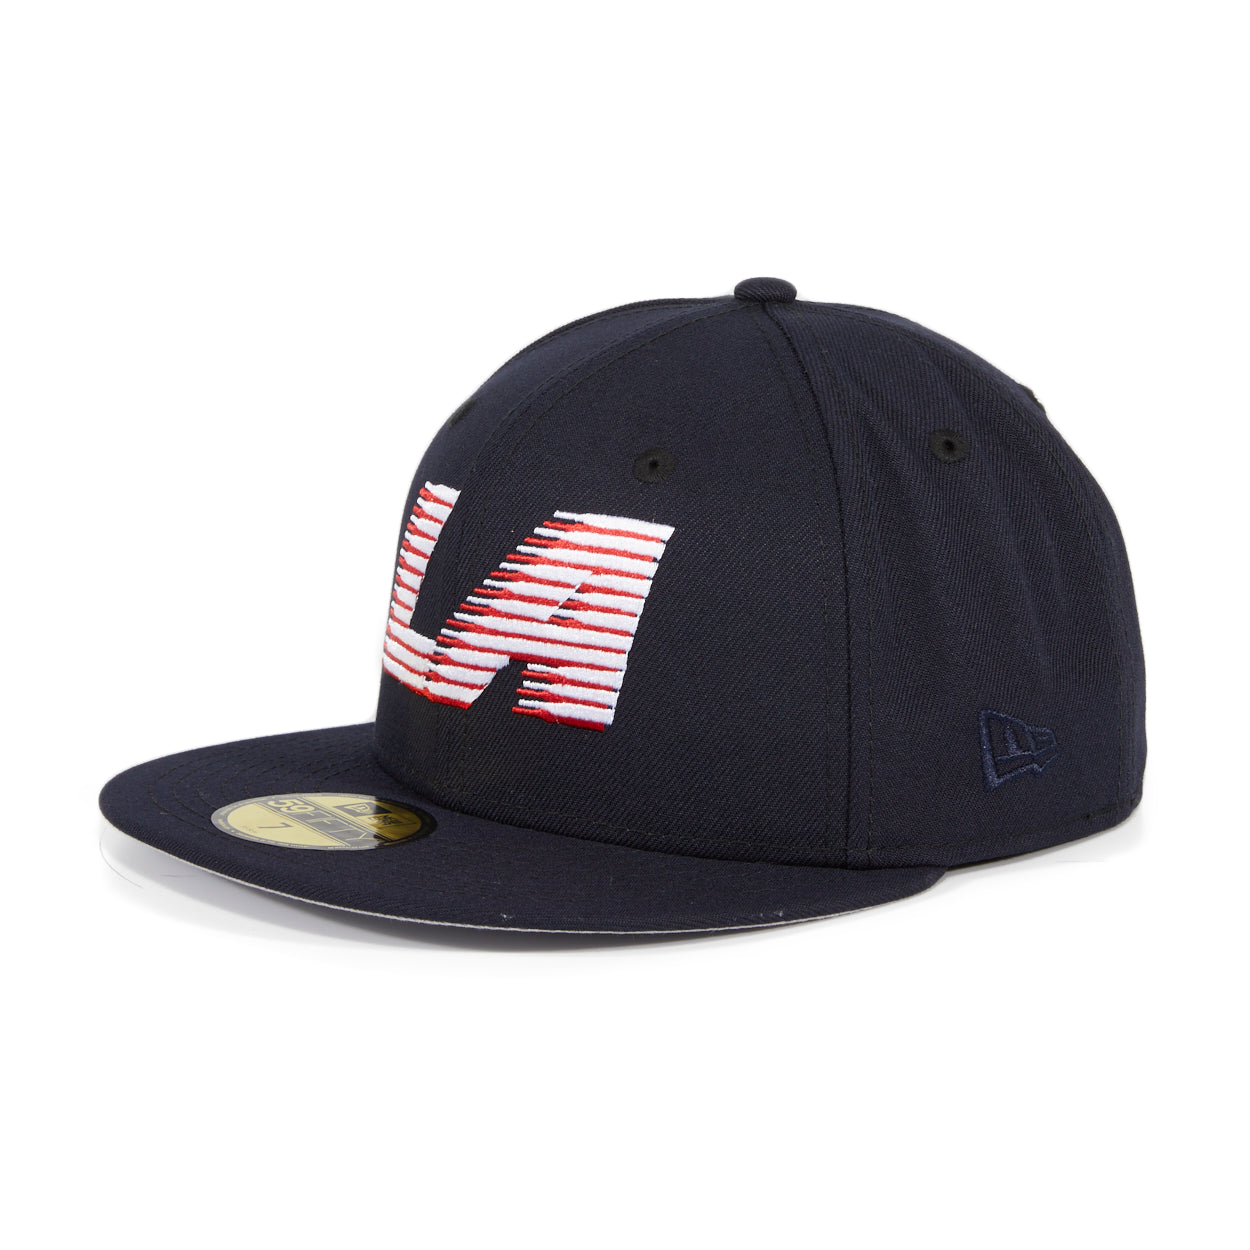 New Era 59Fifty Los Angeles Clippers City LA Hat - Navy